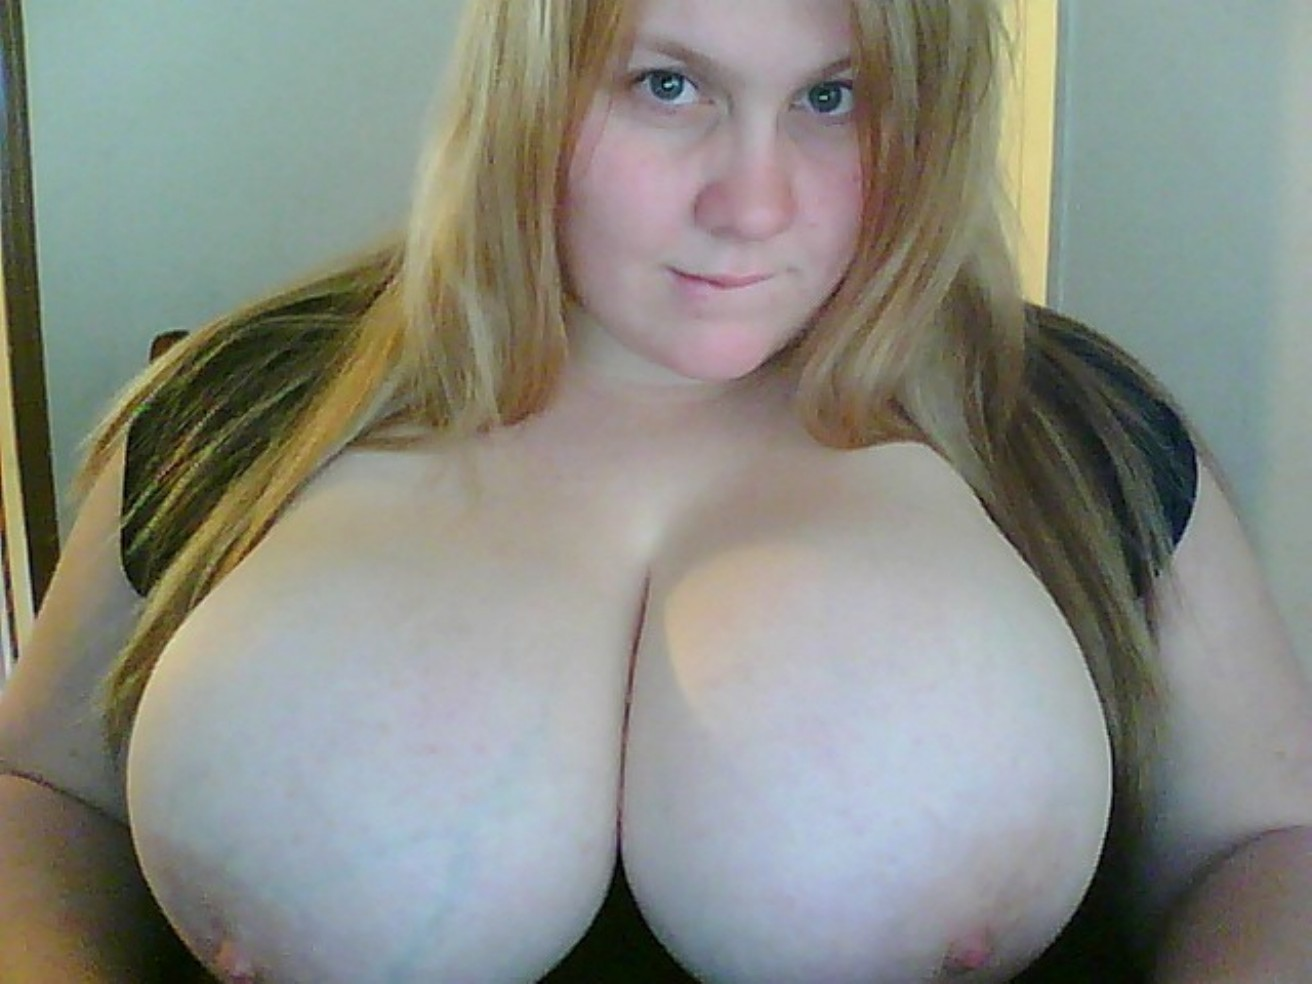 Chubby with small boobs dream